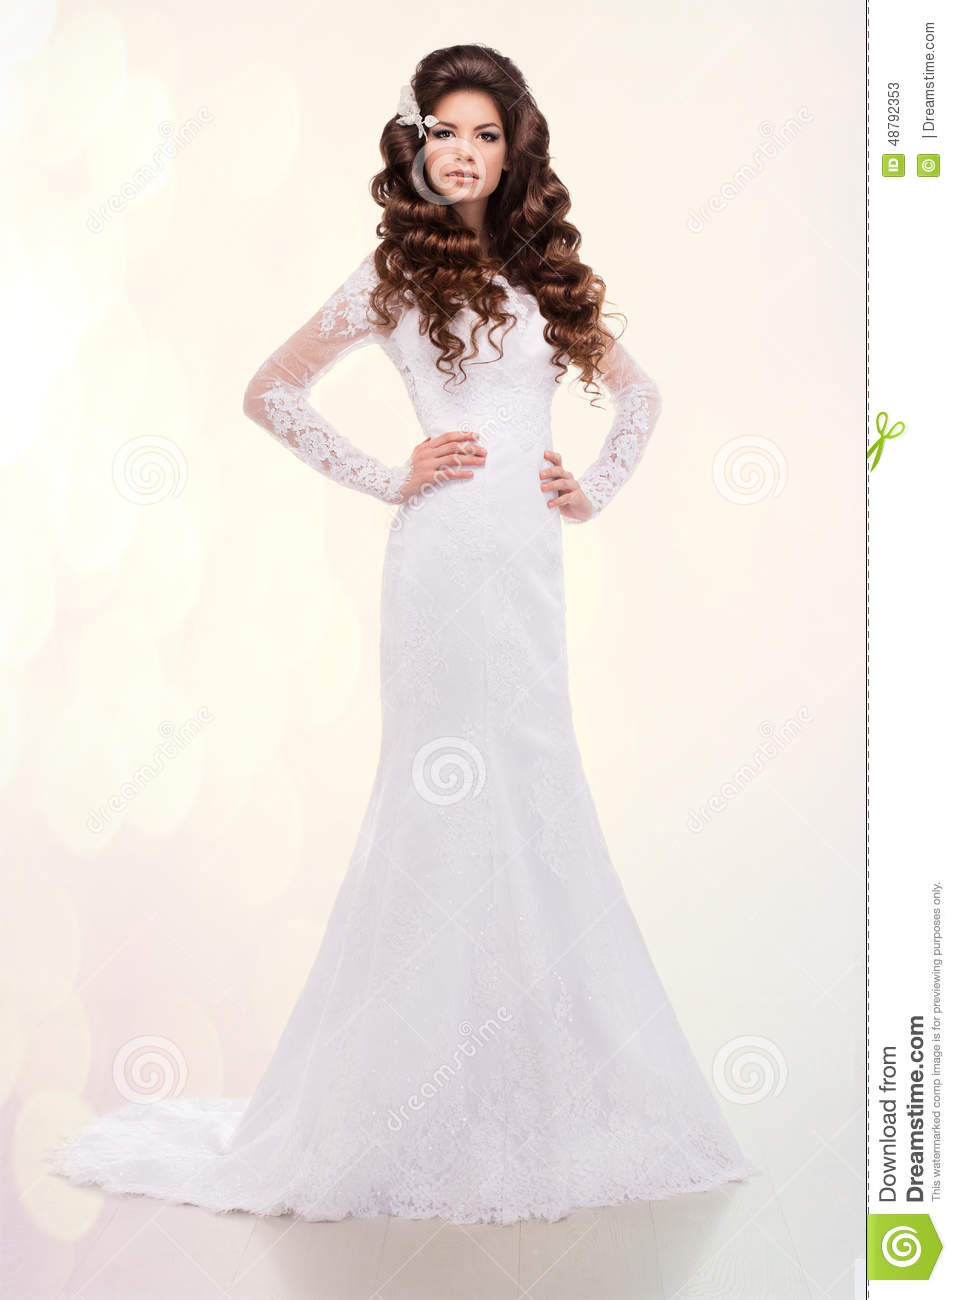 Beautiful Woman With Long Hair In Wedding Dress Over White